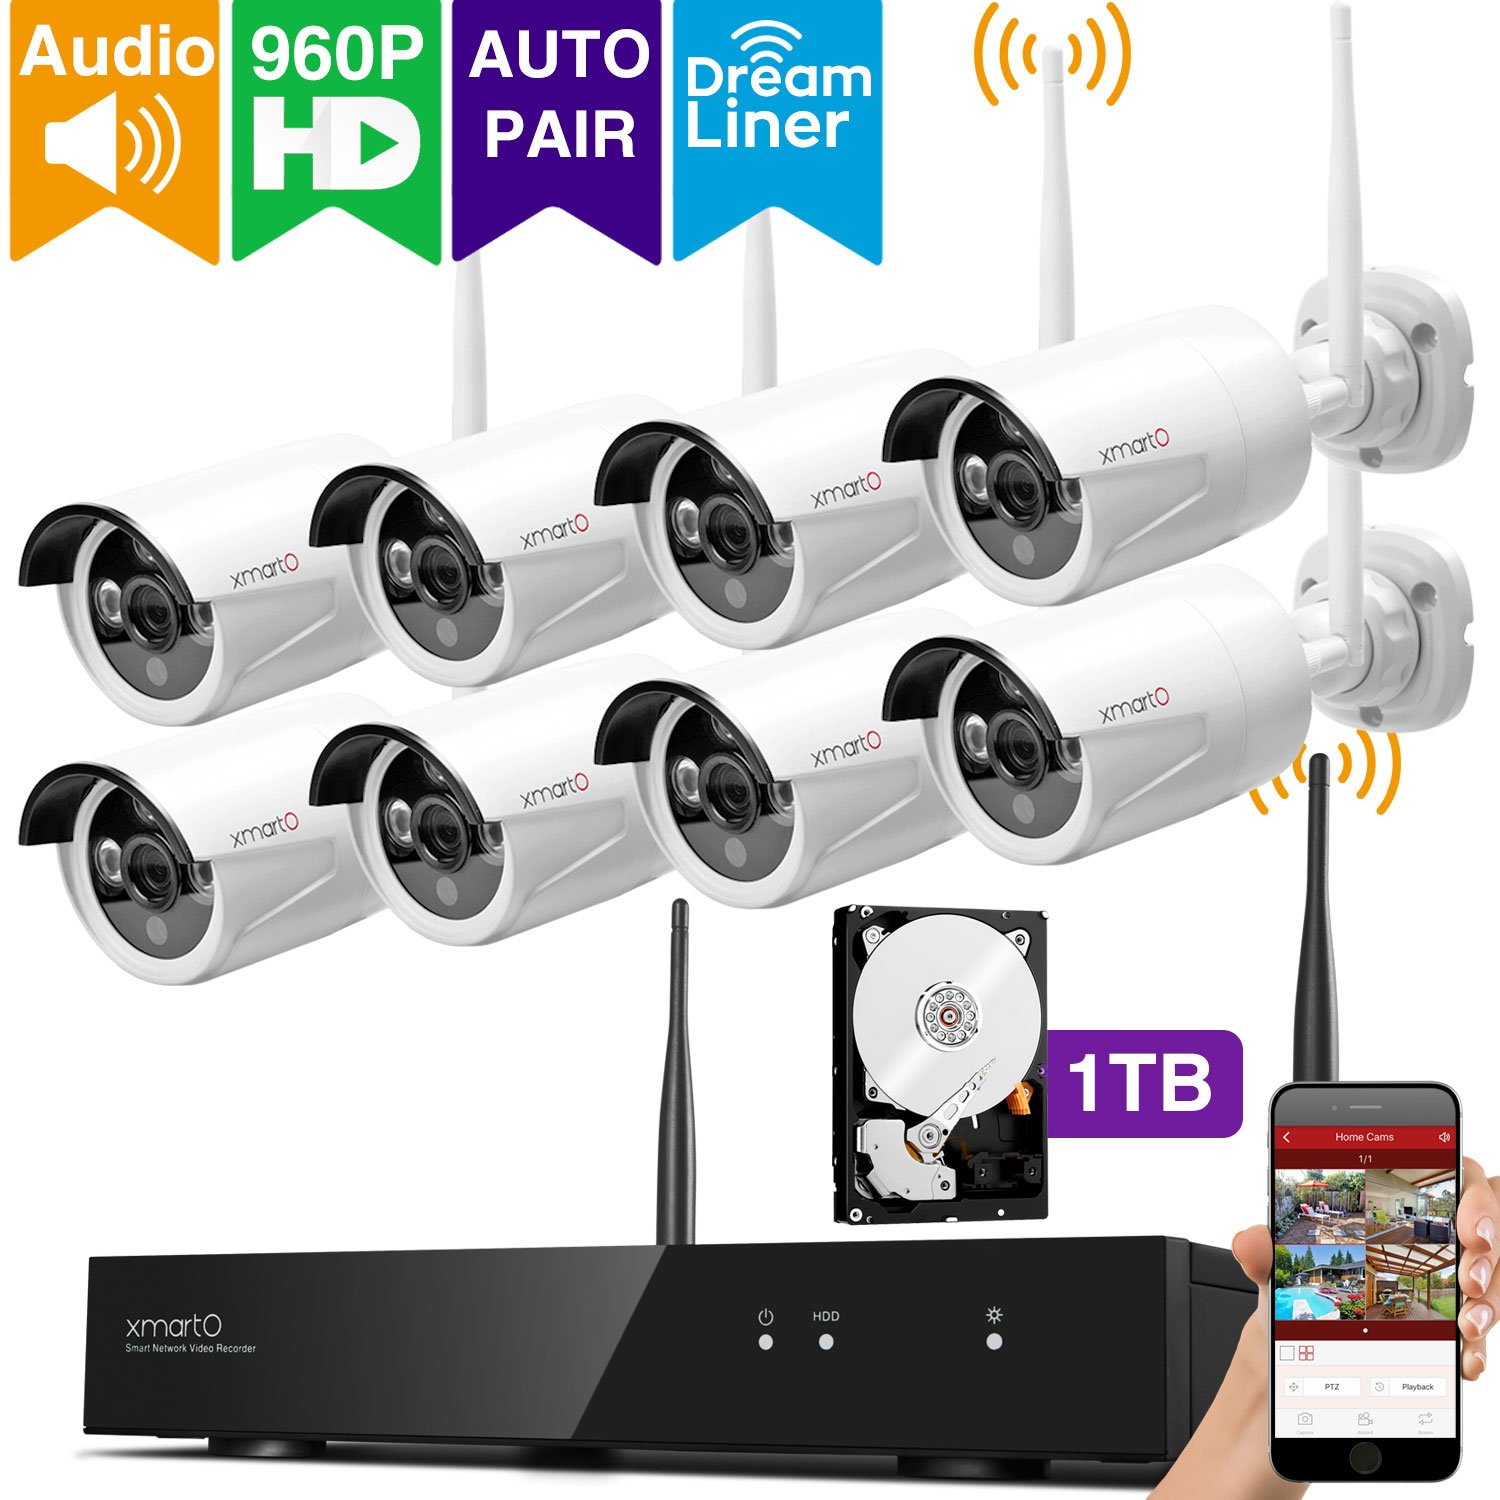 [Audio & Video] xmartO 8 Channel 960p HD Wireless Security Camera System with 8 HD Infrared Outdoor WiFi Cameras and 1TB Hard Drive, Dream Liner WiFi Relay, NVR Built-in Router, Auto-Pair by xmartO